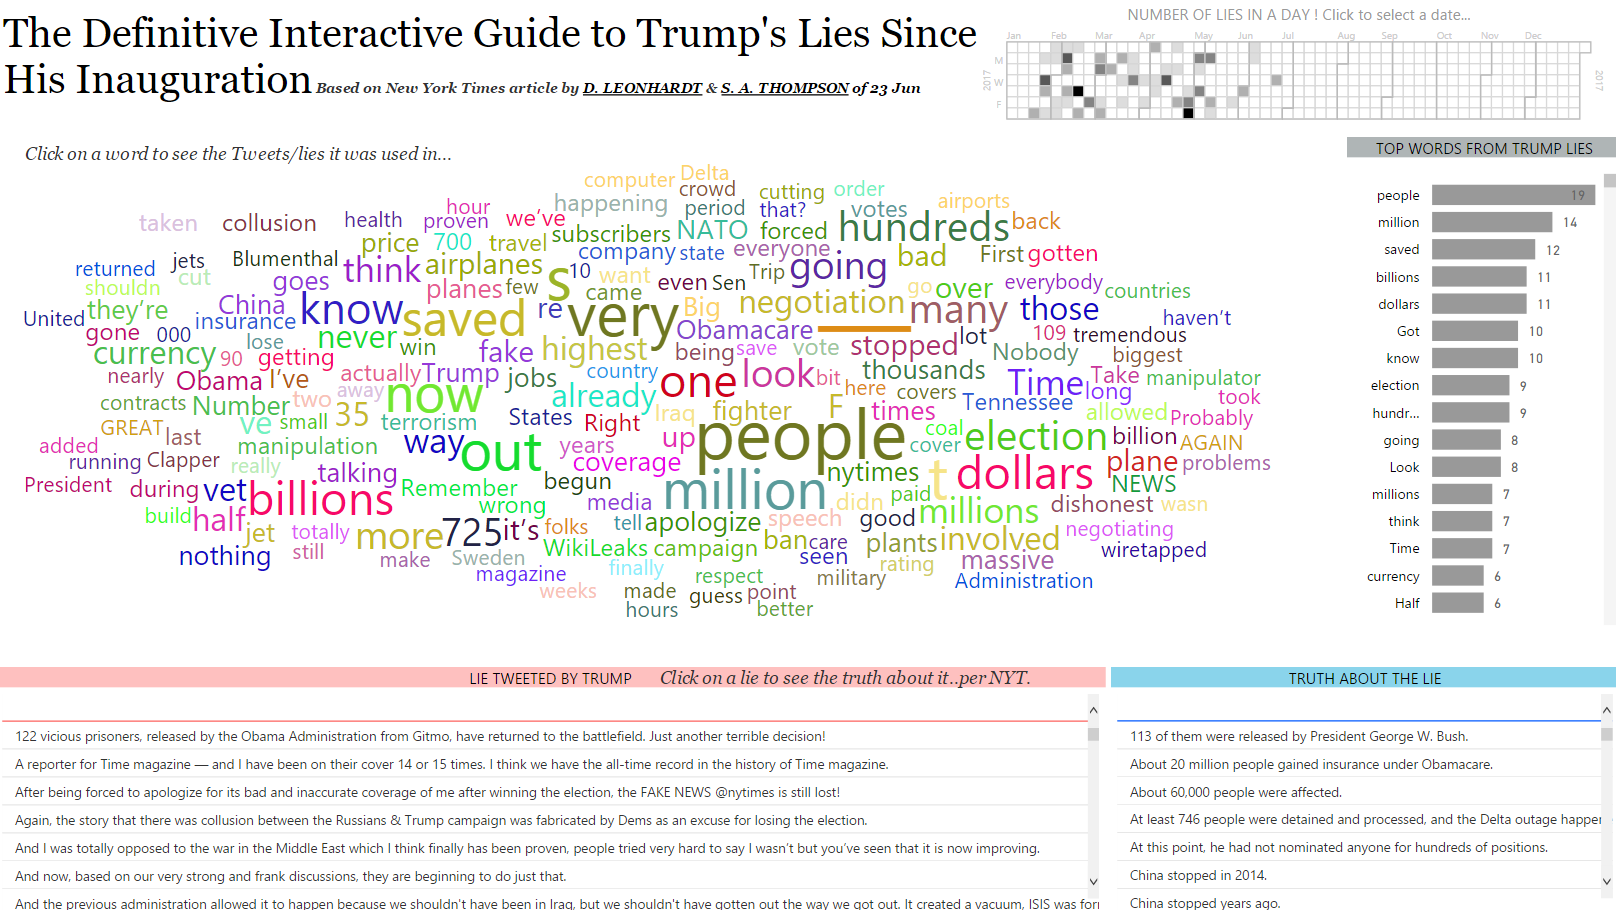 Definitive Interactive Guide to Trump's Lies Since His Inauguration